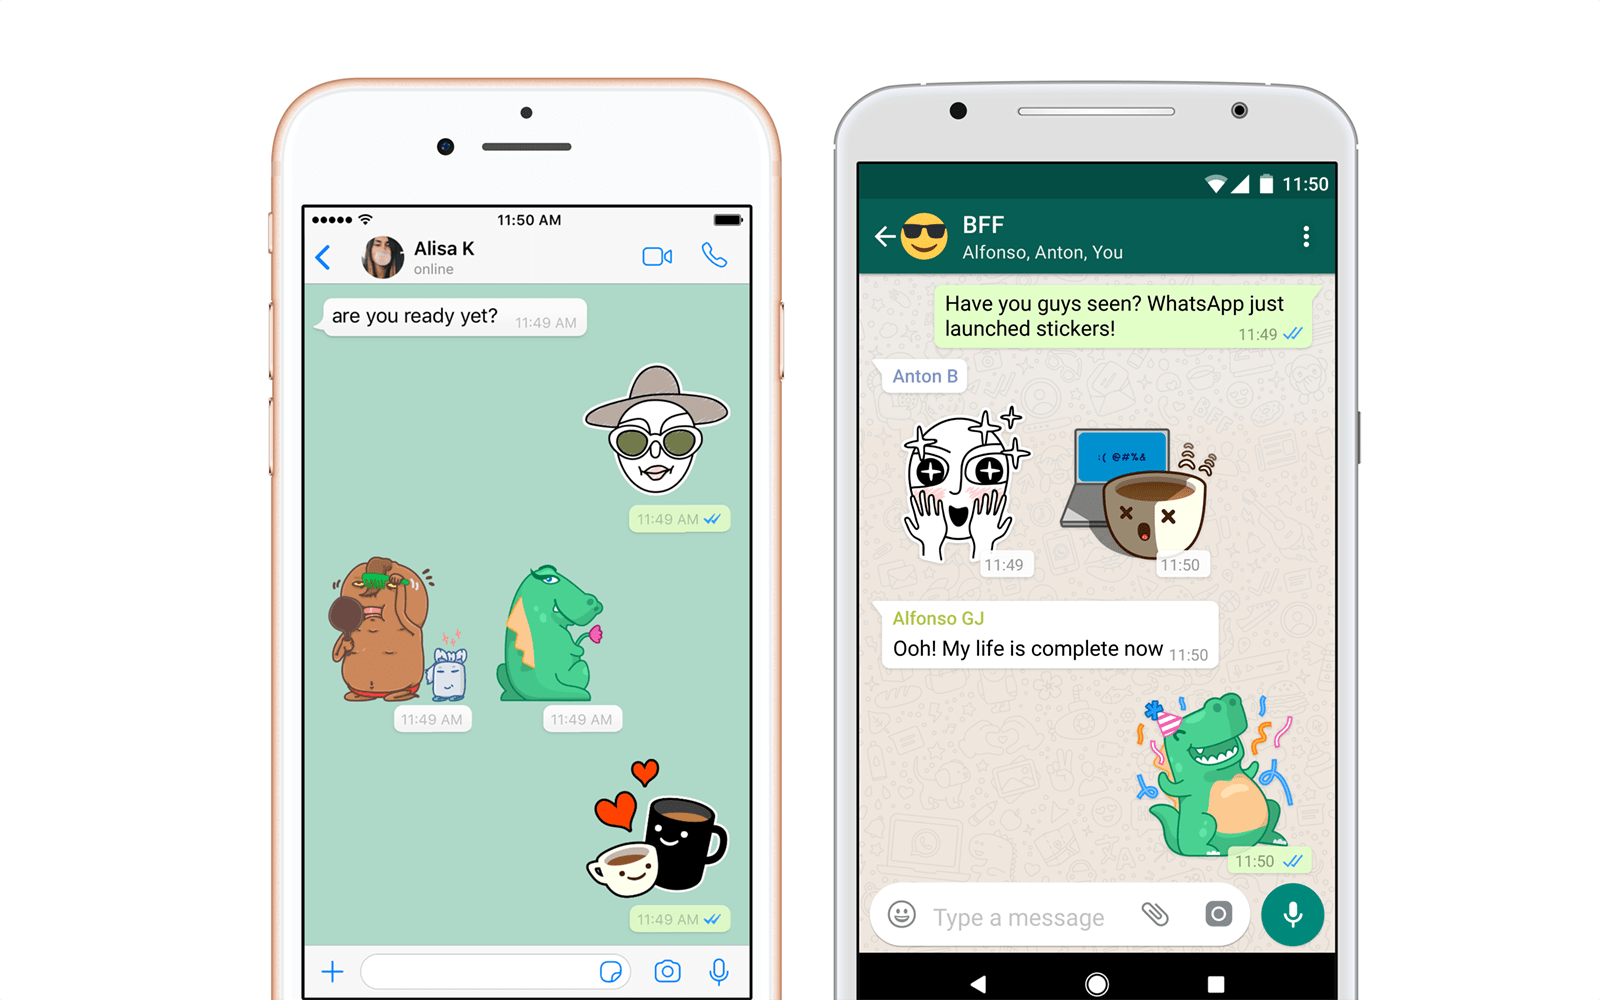 Stickers In Whatsapp Whatsapp Finally Gets Stickers And They Are Coming Soon